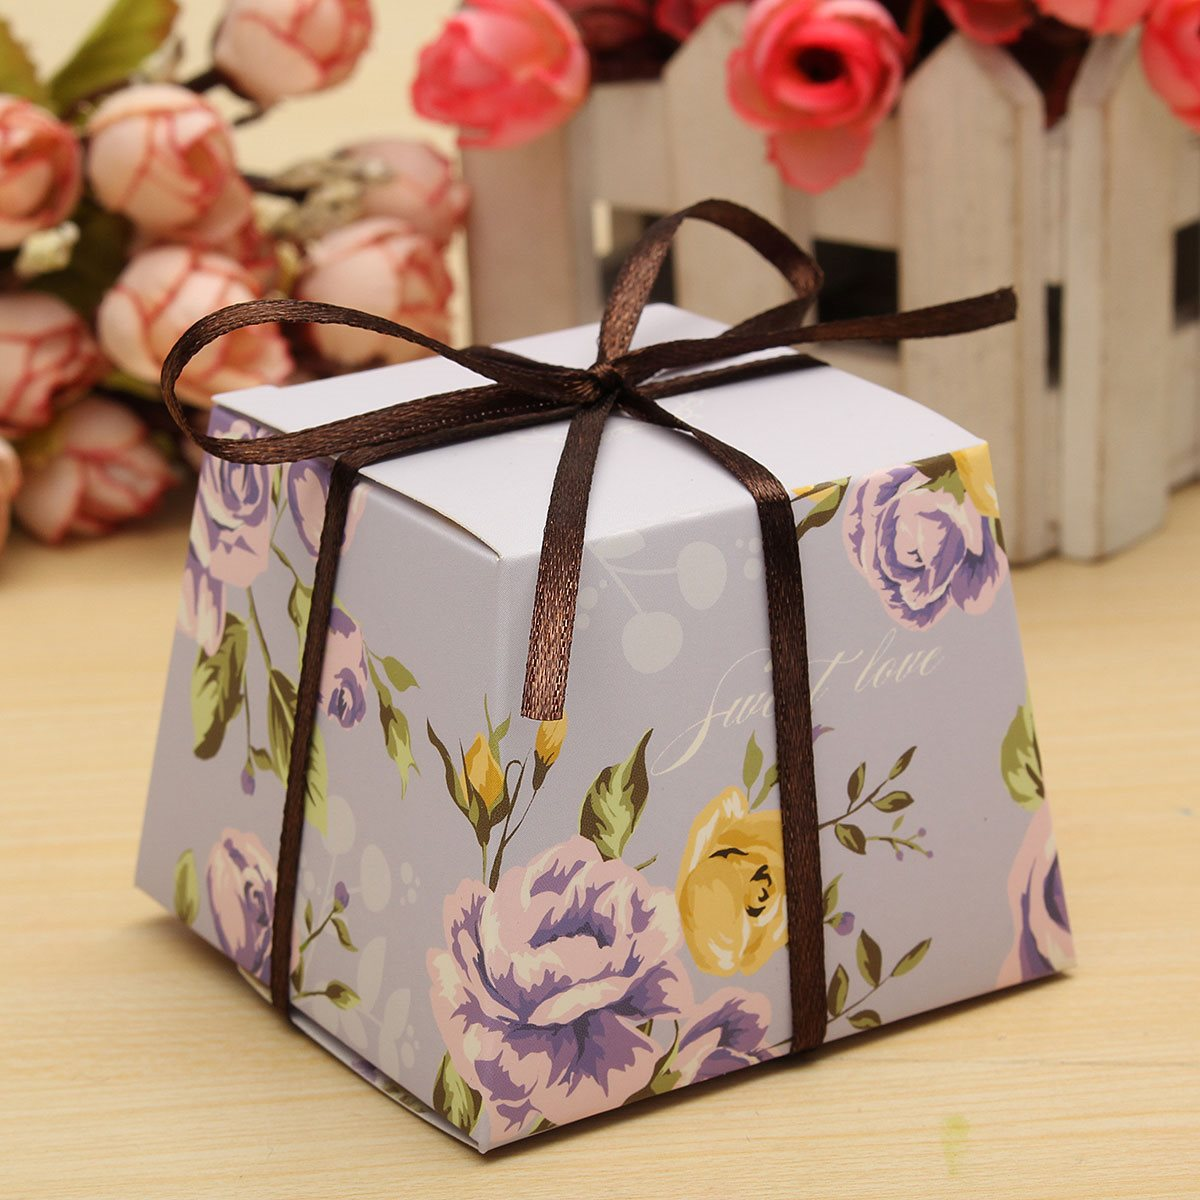 Aliexpress.com : Buy 10 Pcs Floral Paper Candy Boxes Chocolate Box ...